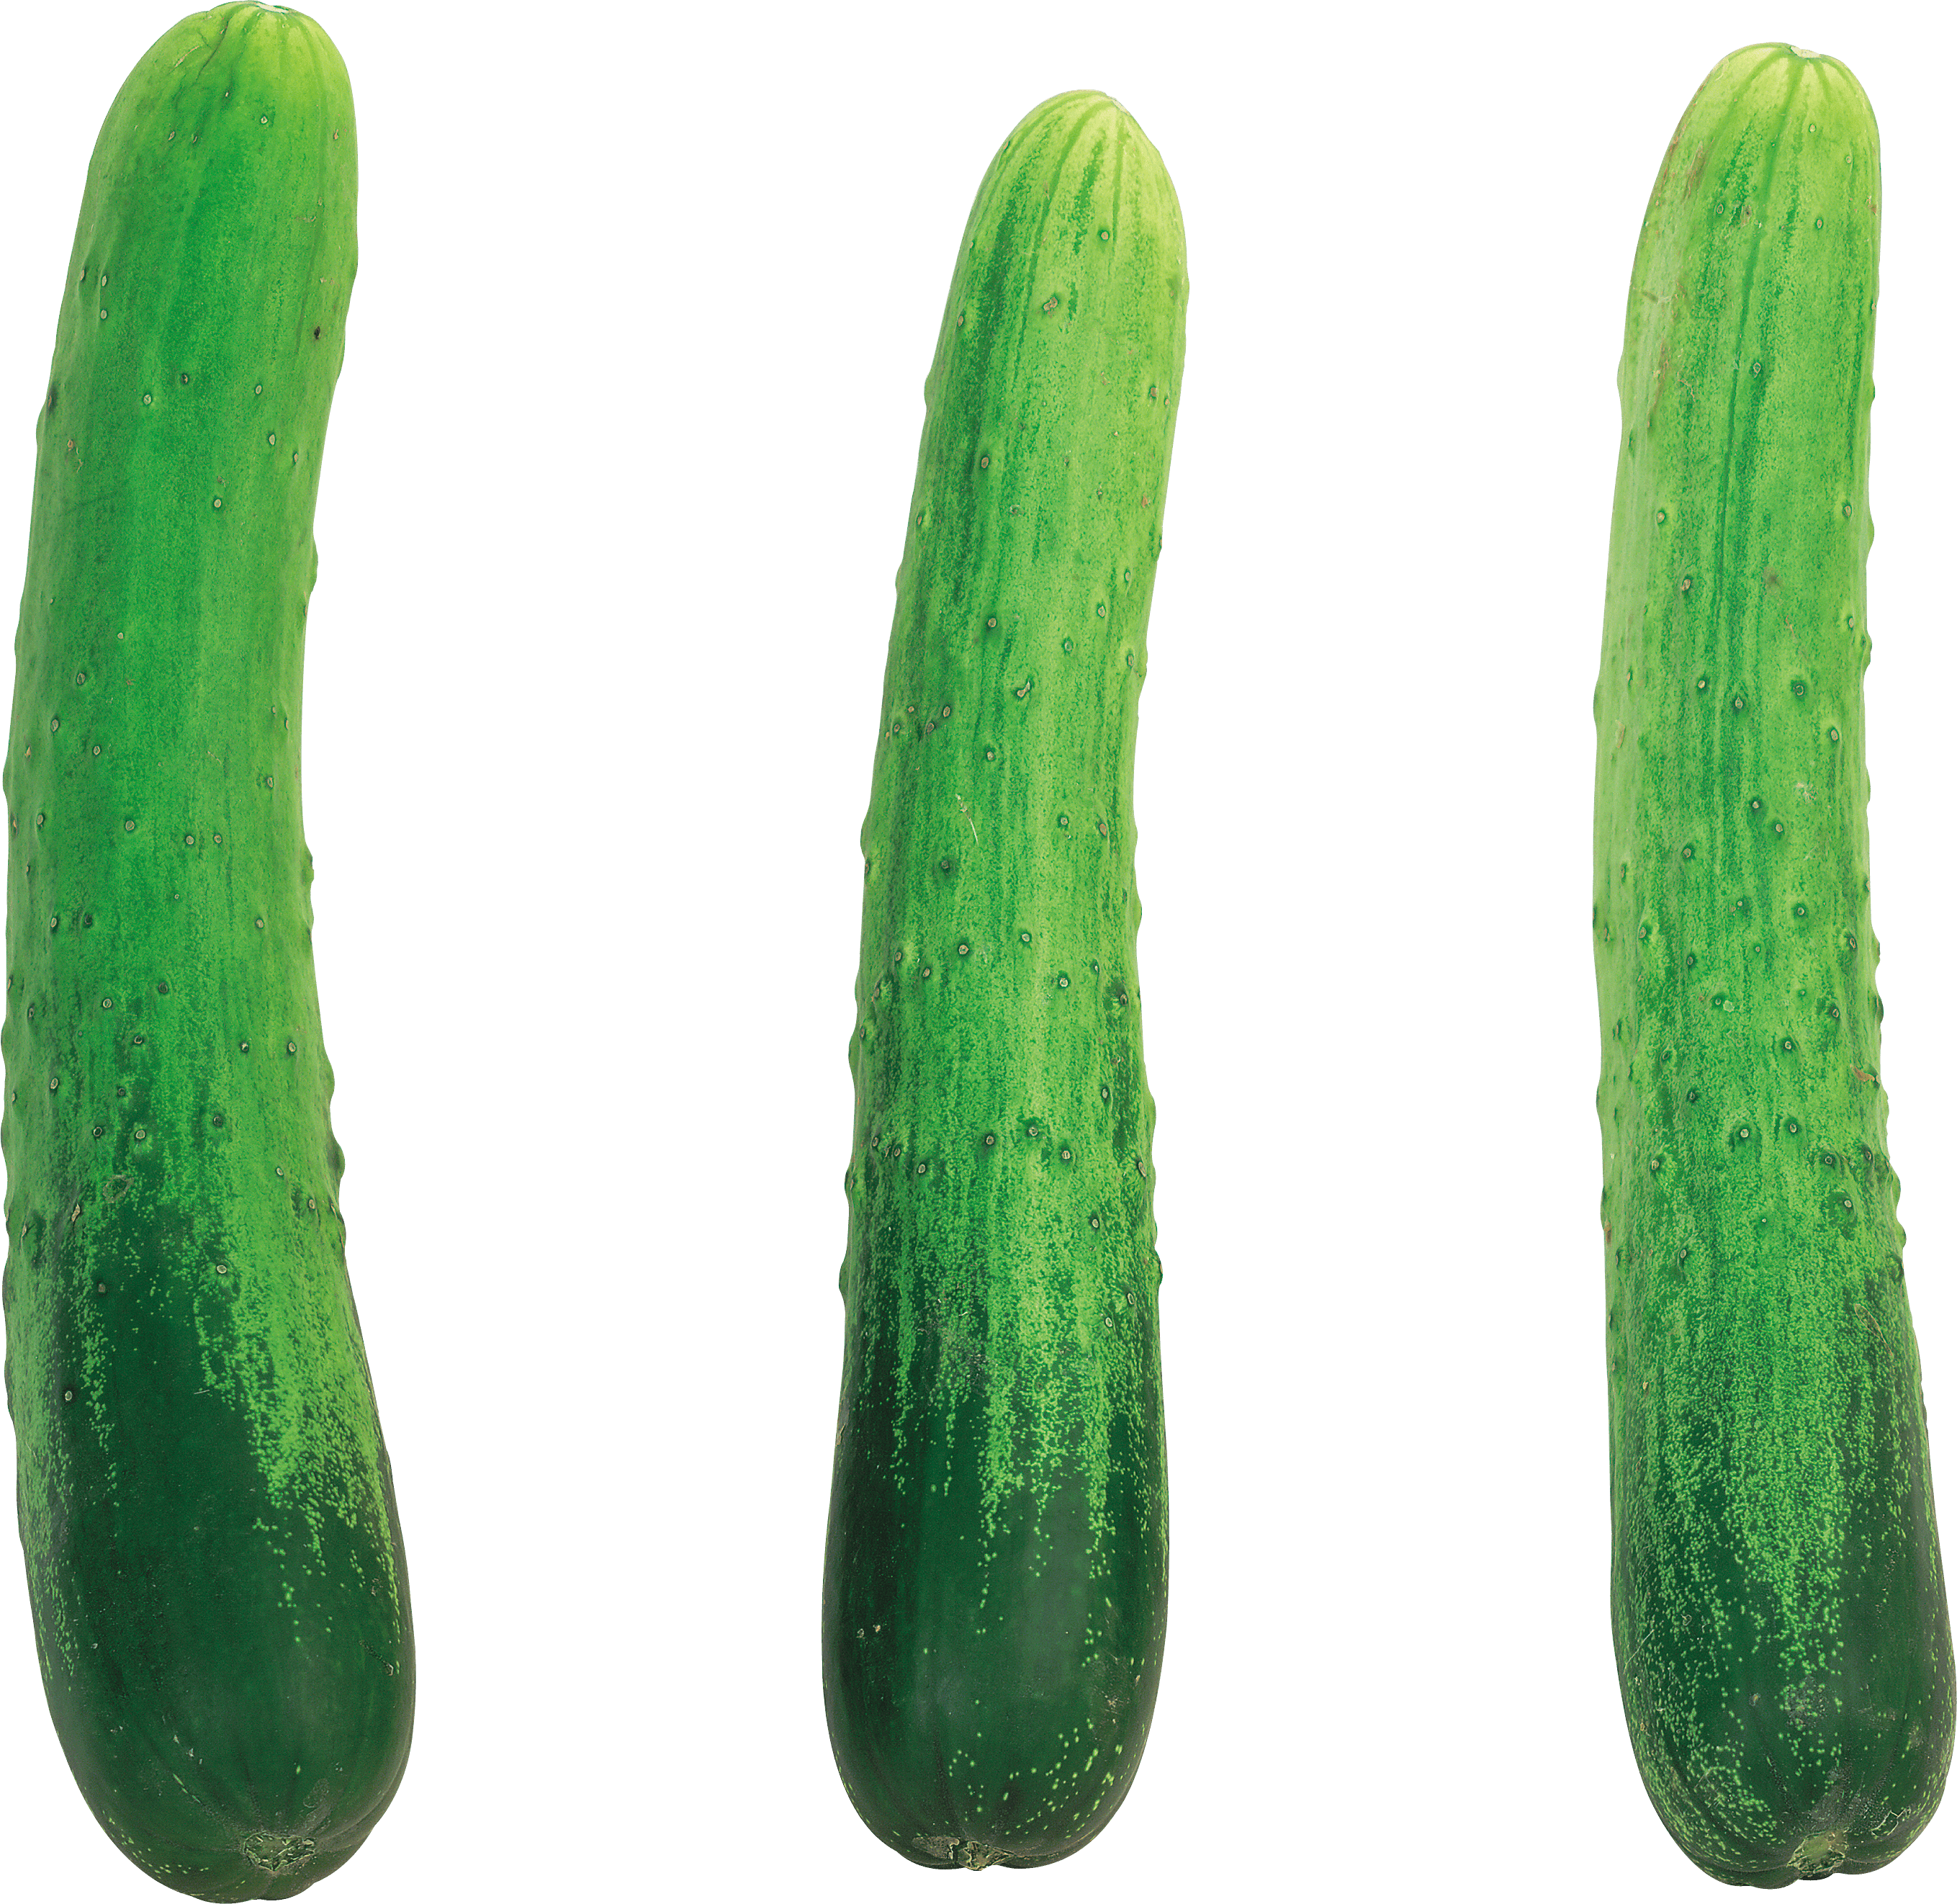 Download Cucumbers Png Image HQ PNG Image.